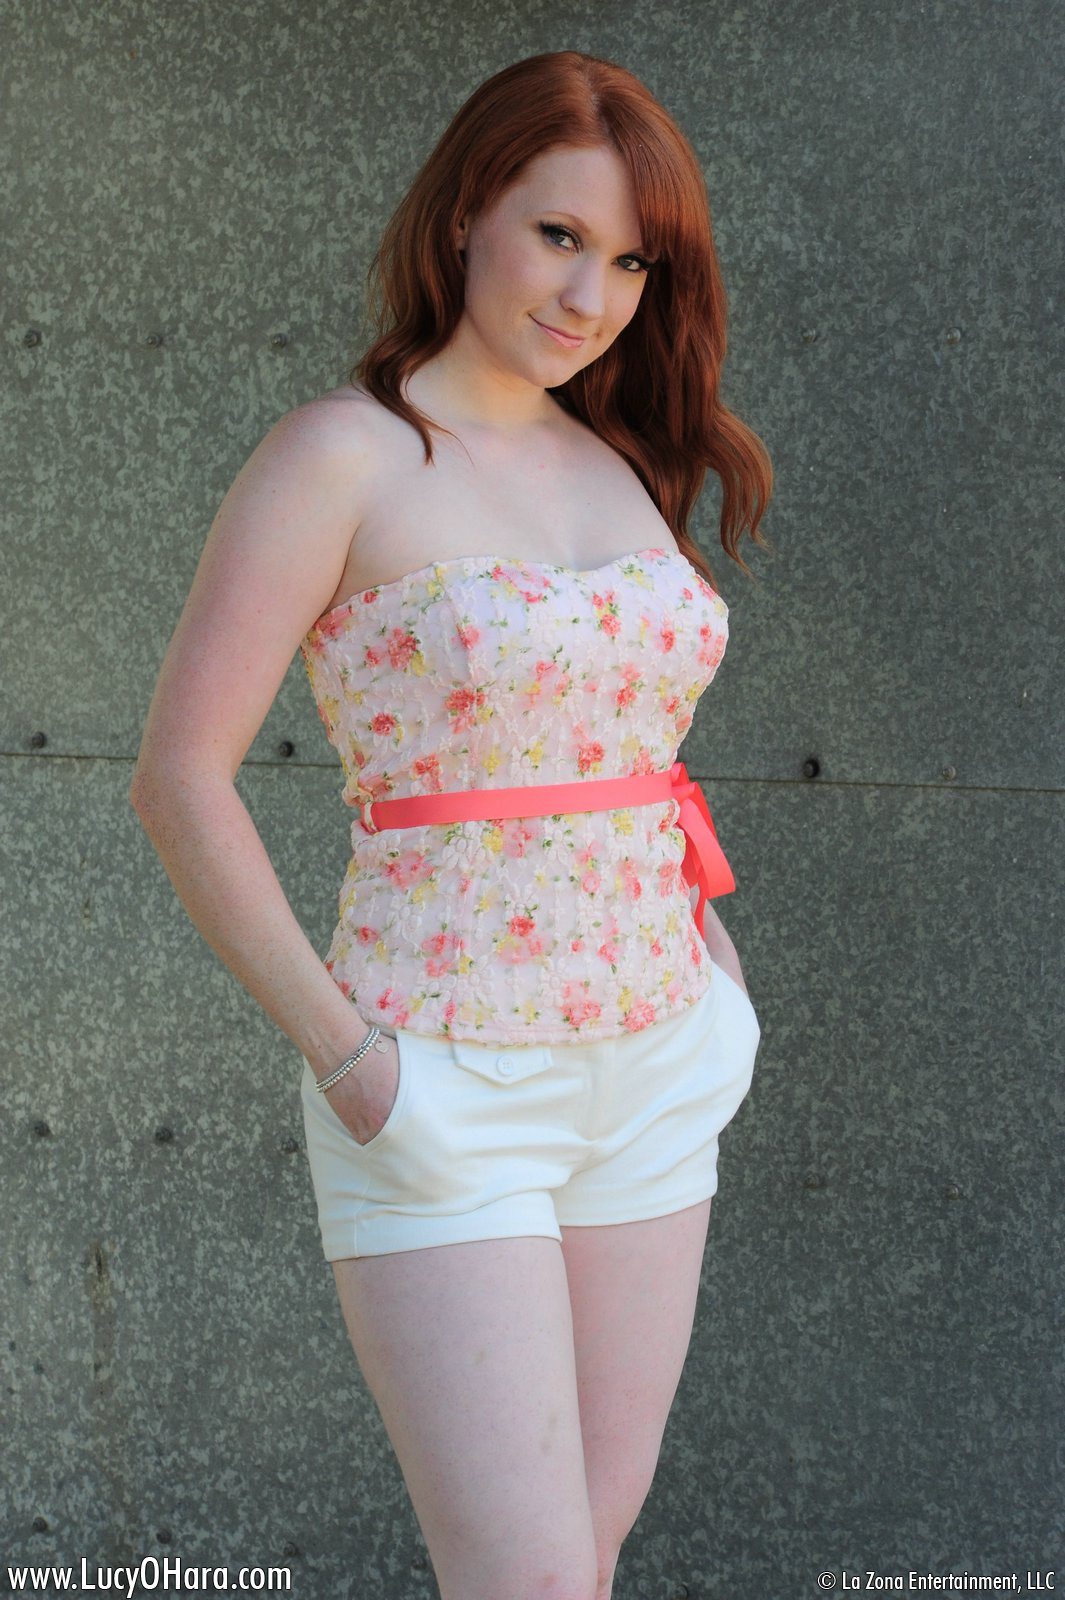 Sexy Redhead Lucy Ohara Upskirt - Lucy Ohara slides at large be advisable for their similarly ...